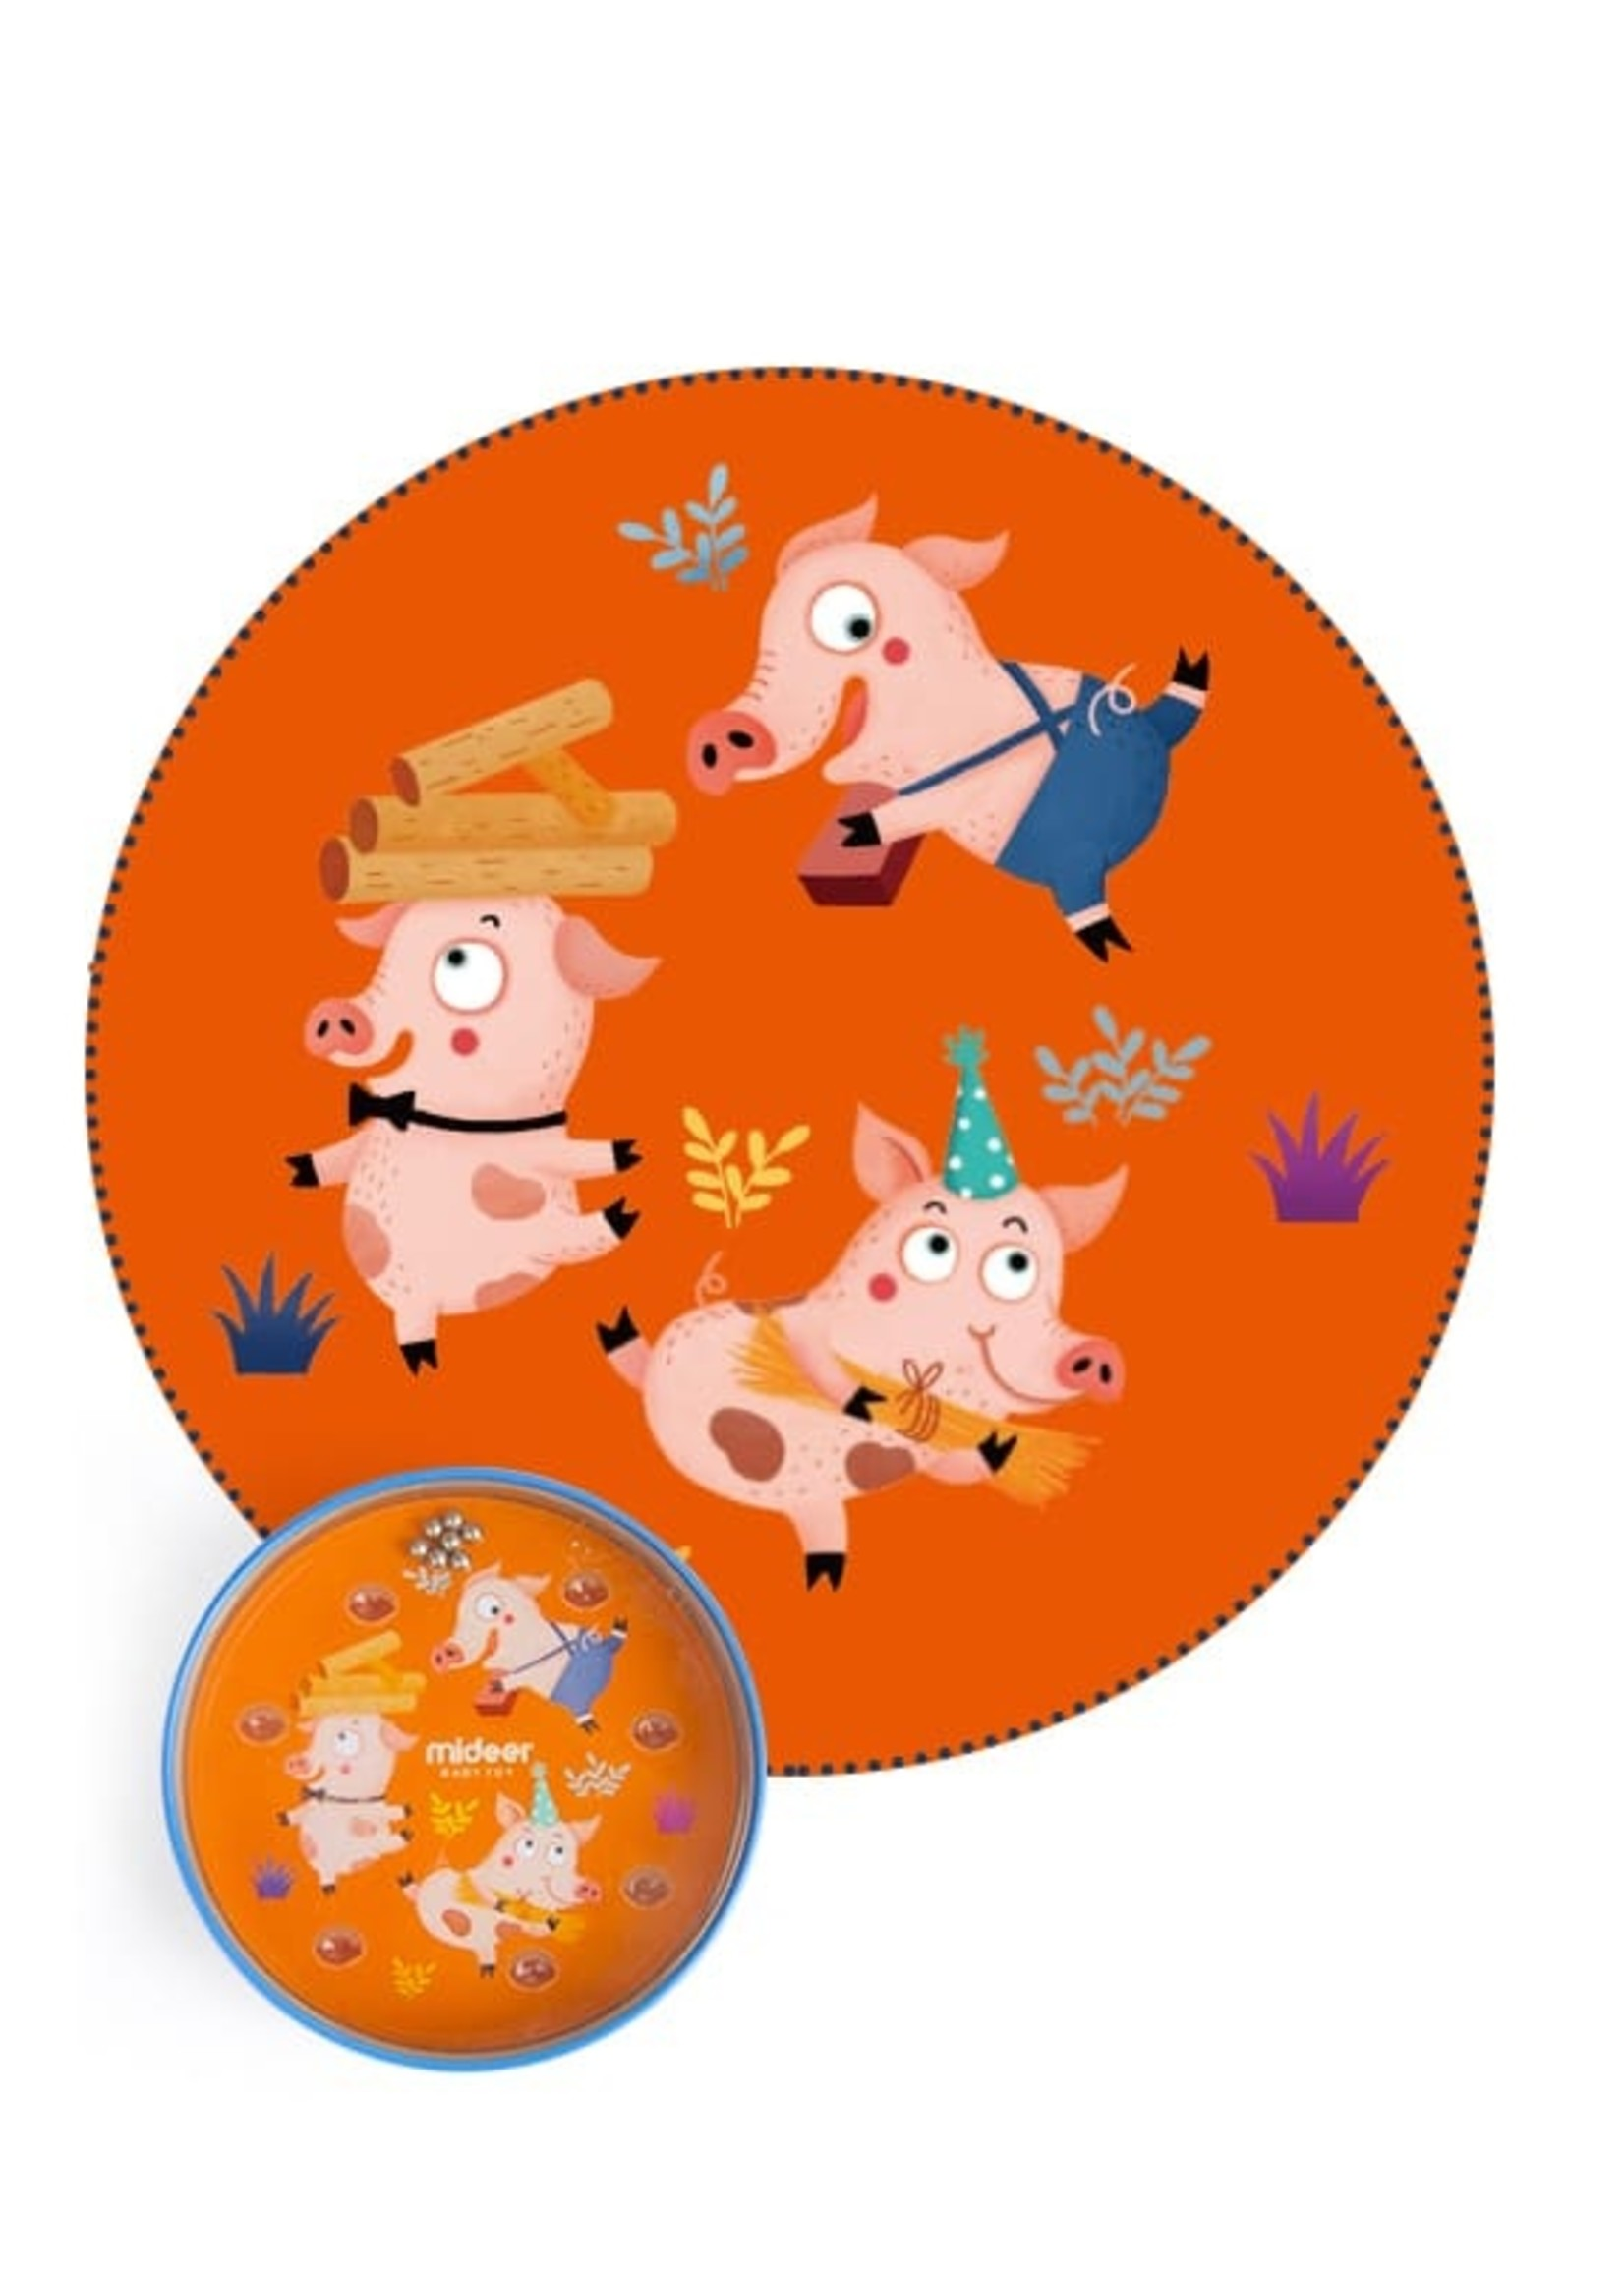 Mideer Mideer-AW20 MD6017 Beads Game - The Three Little Pigs